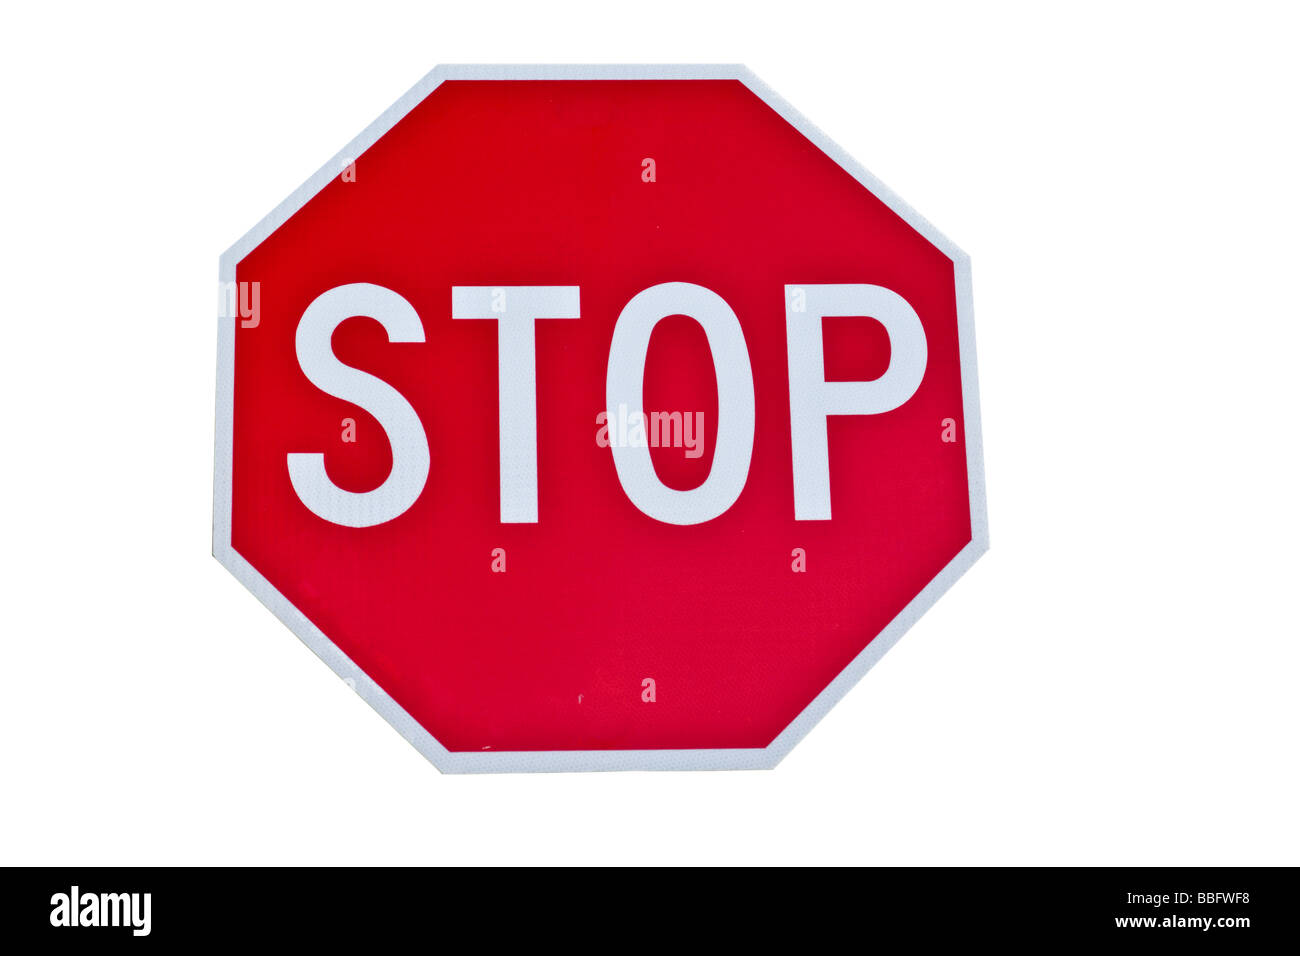 Street or road sign detailing a stop - Stock Image